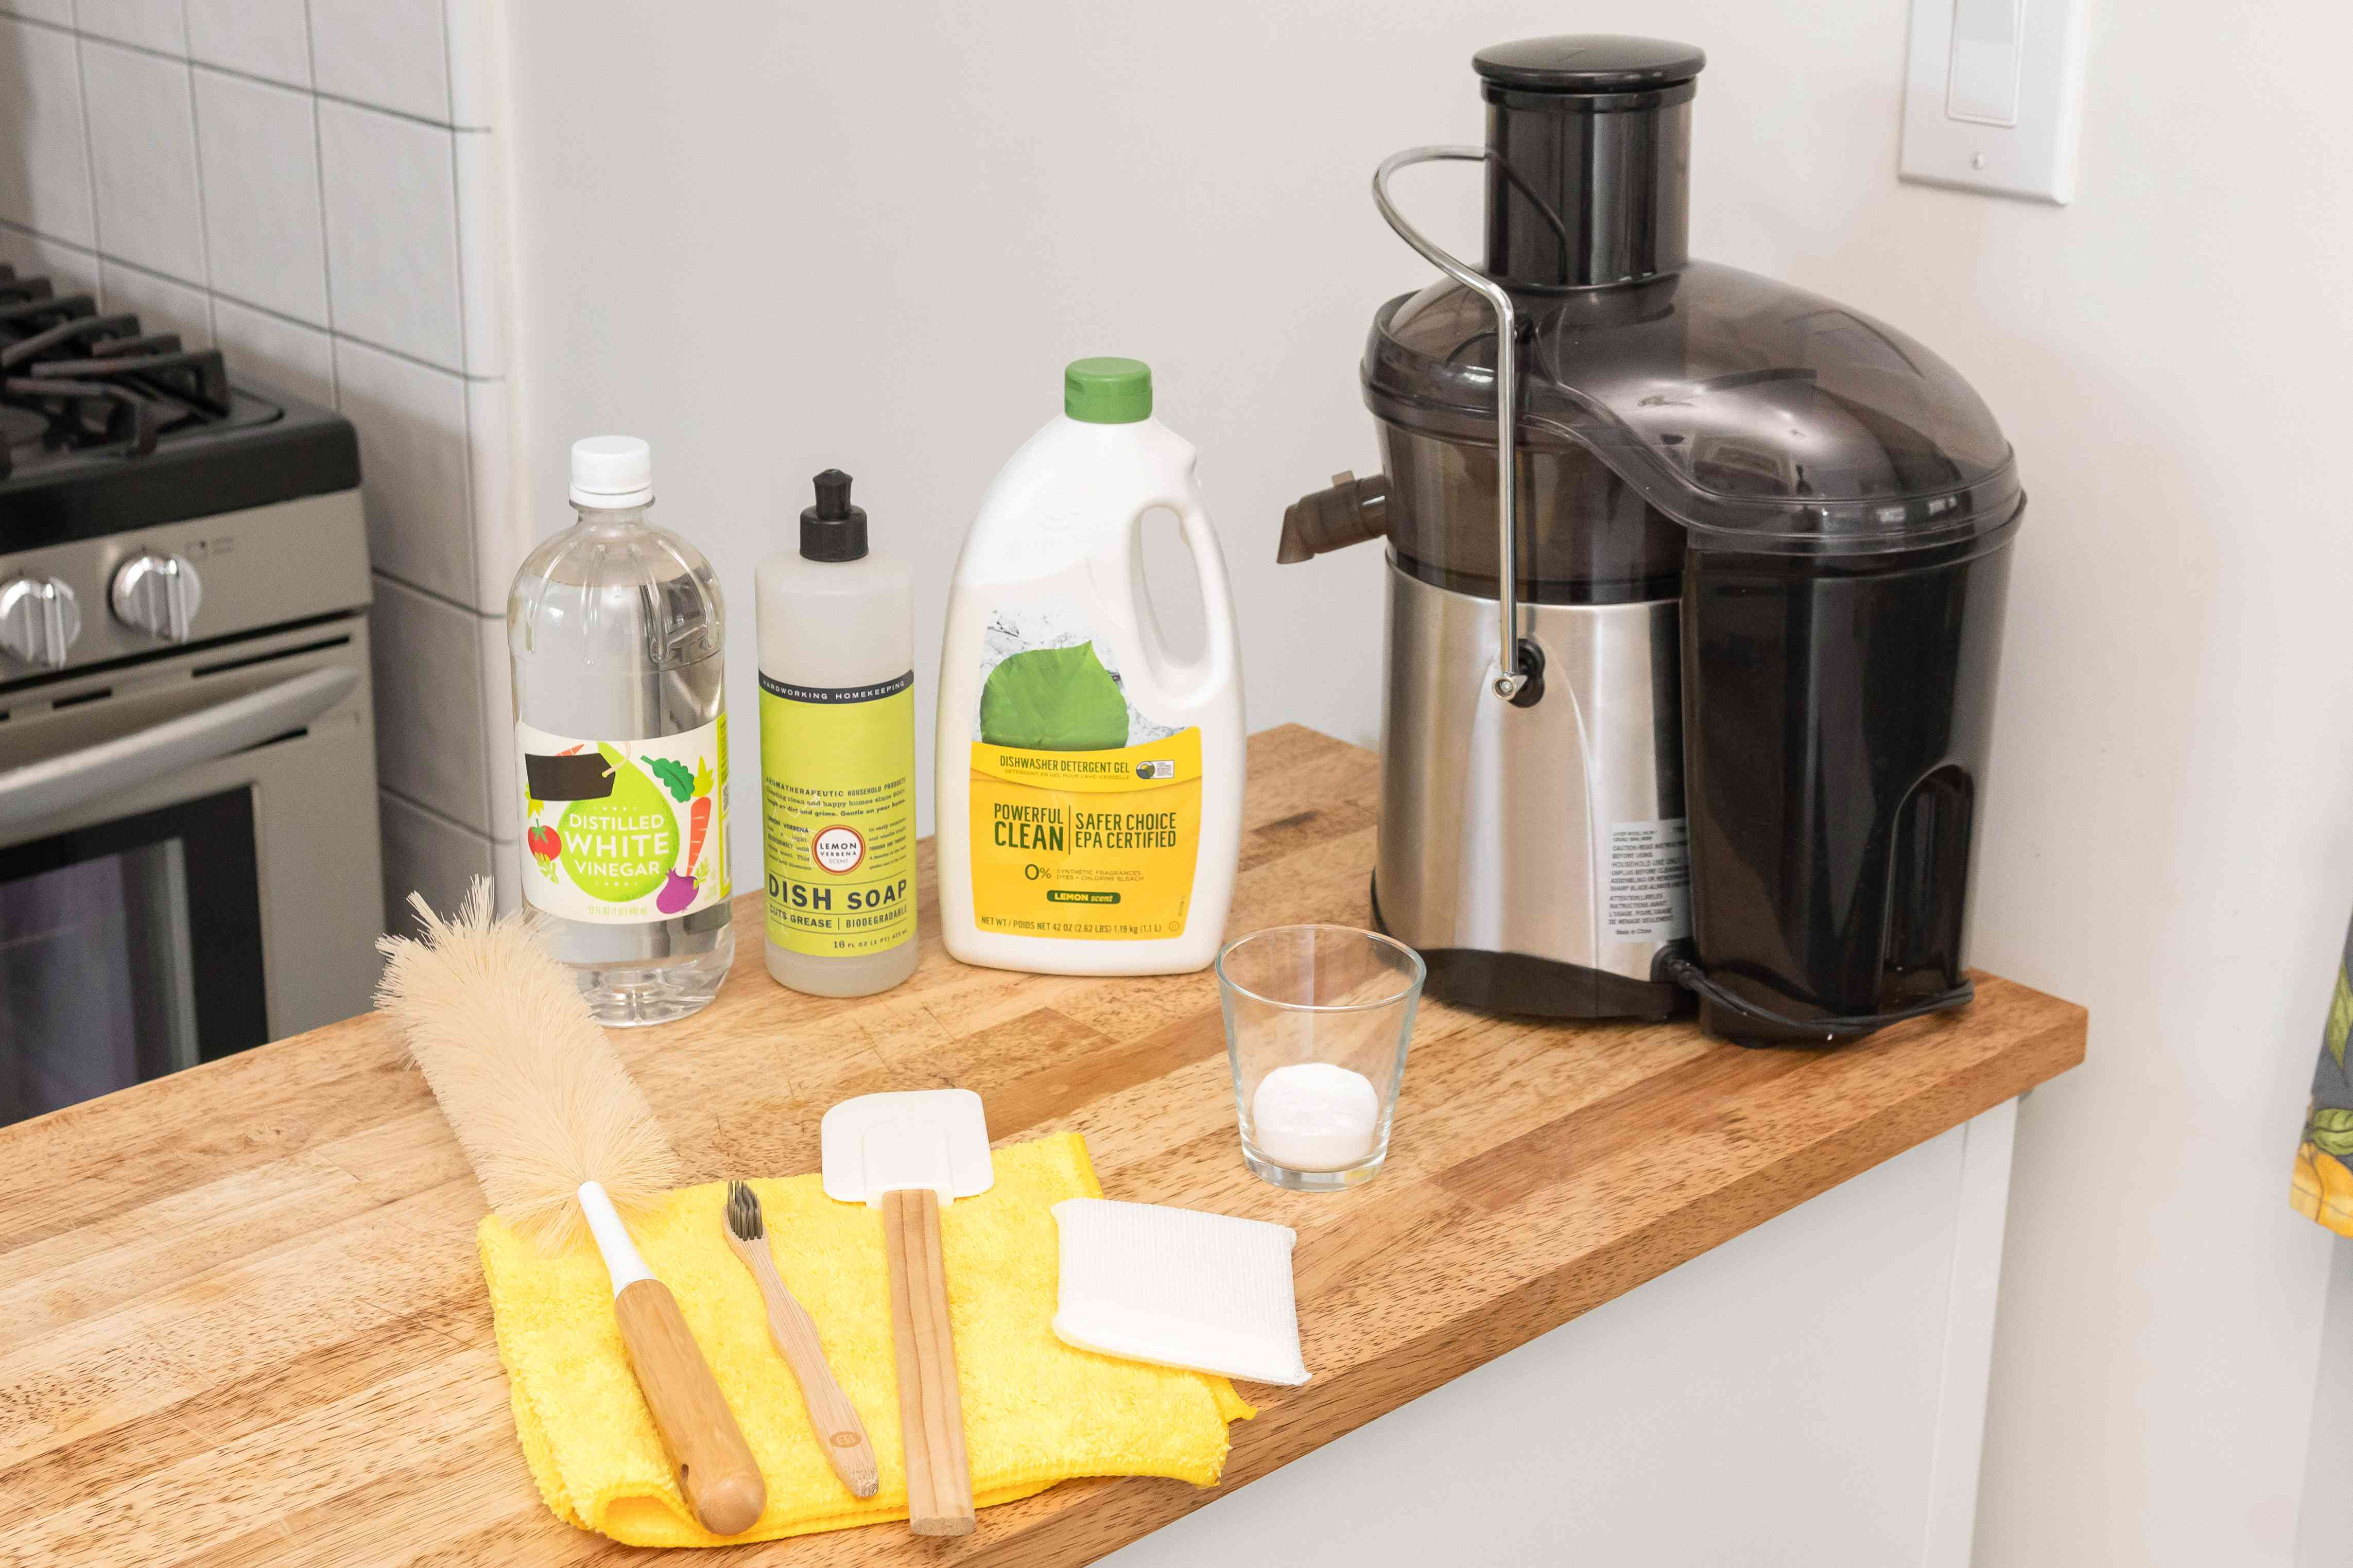 Materials and tools to clean a juicer on wooden surface in kitchen